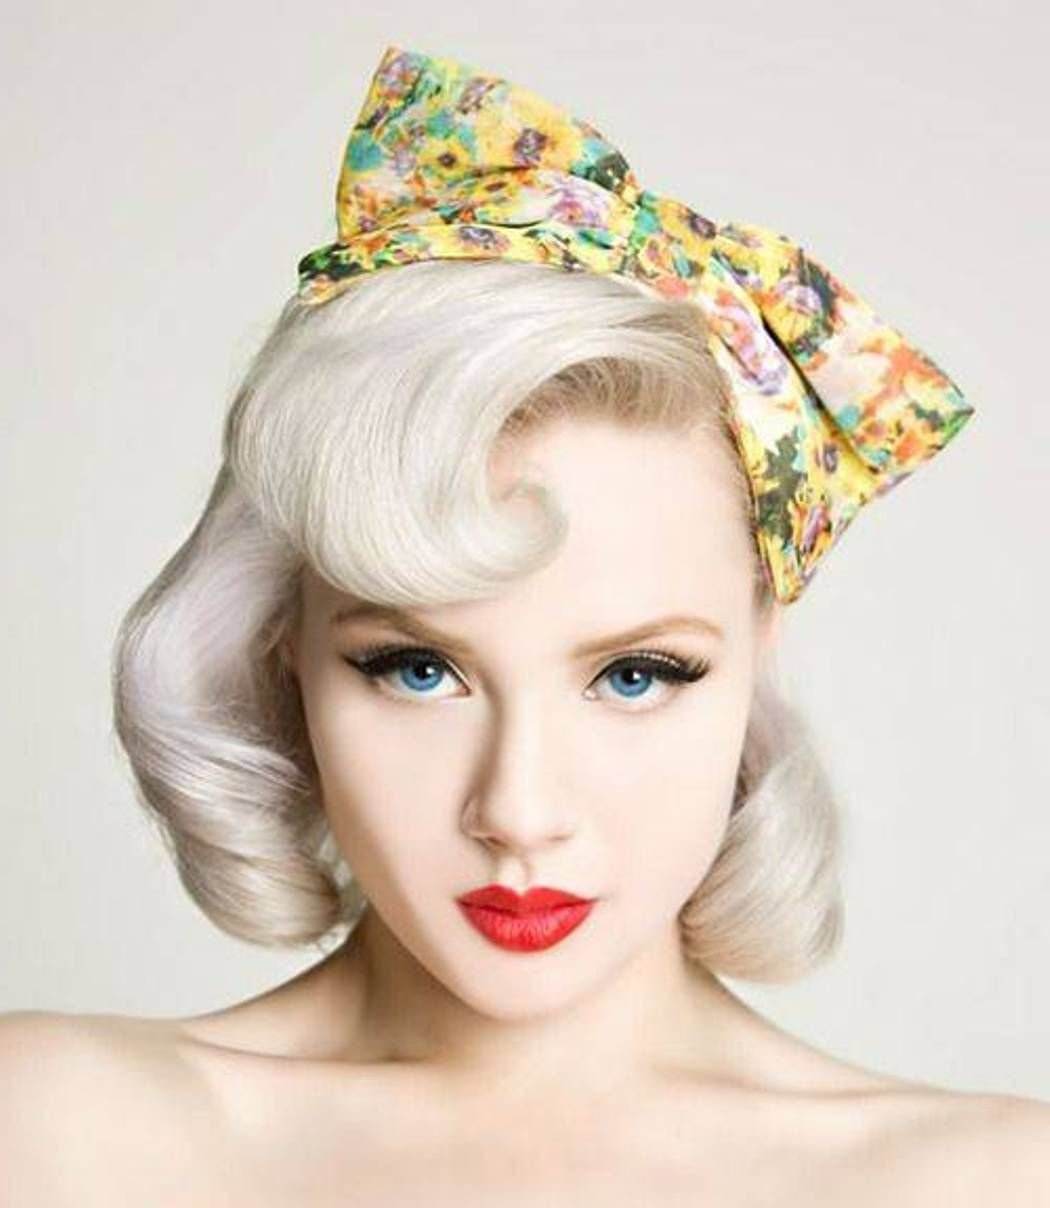 The Best Short Blonde Pin Up Girl Hairstyles Cakepins Com Vintage Pictures